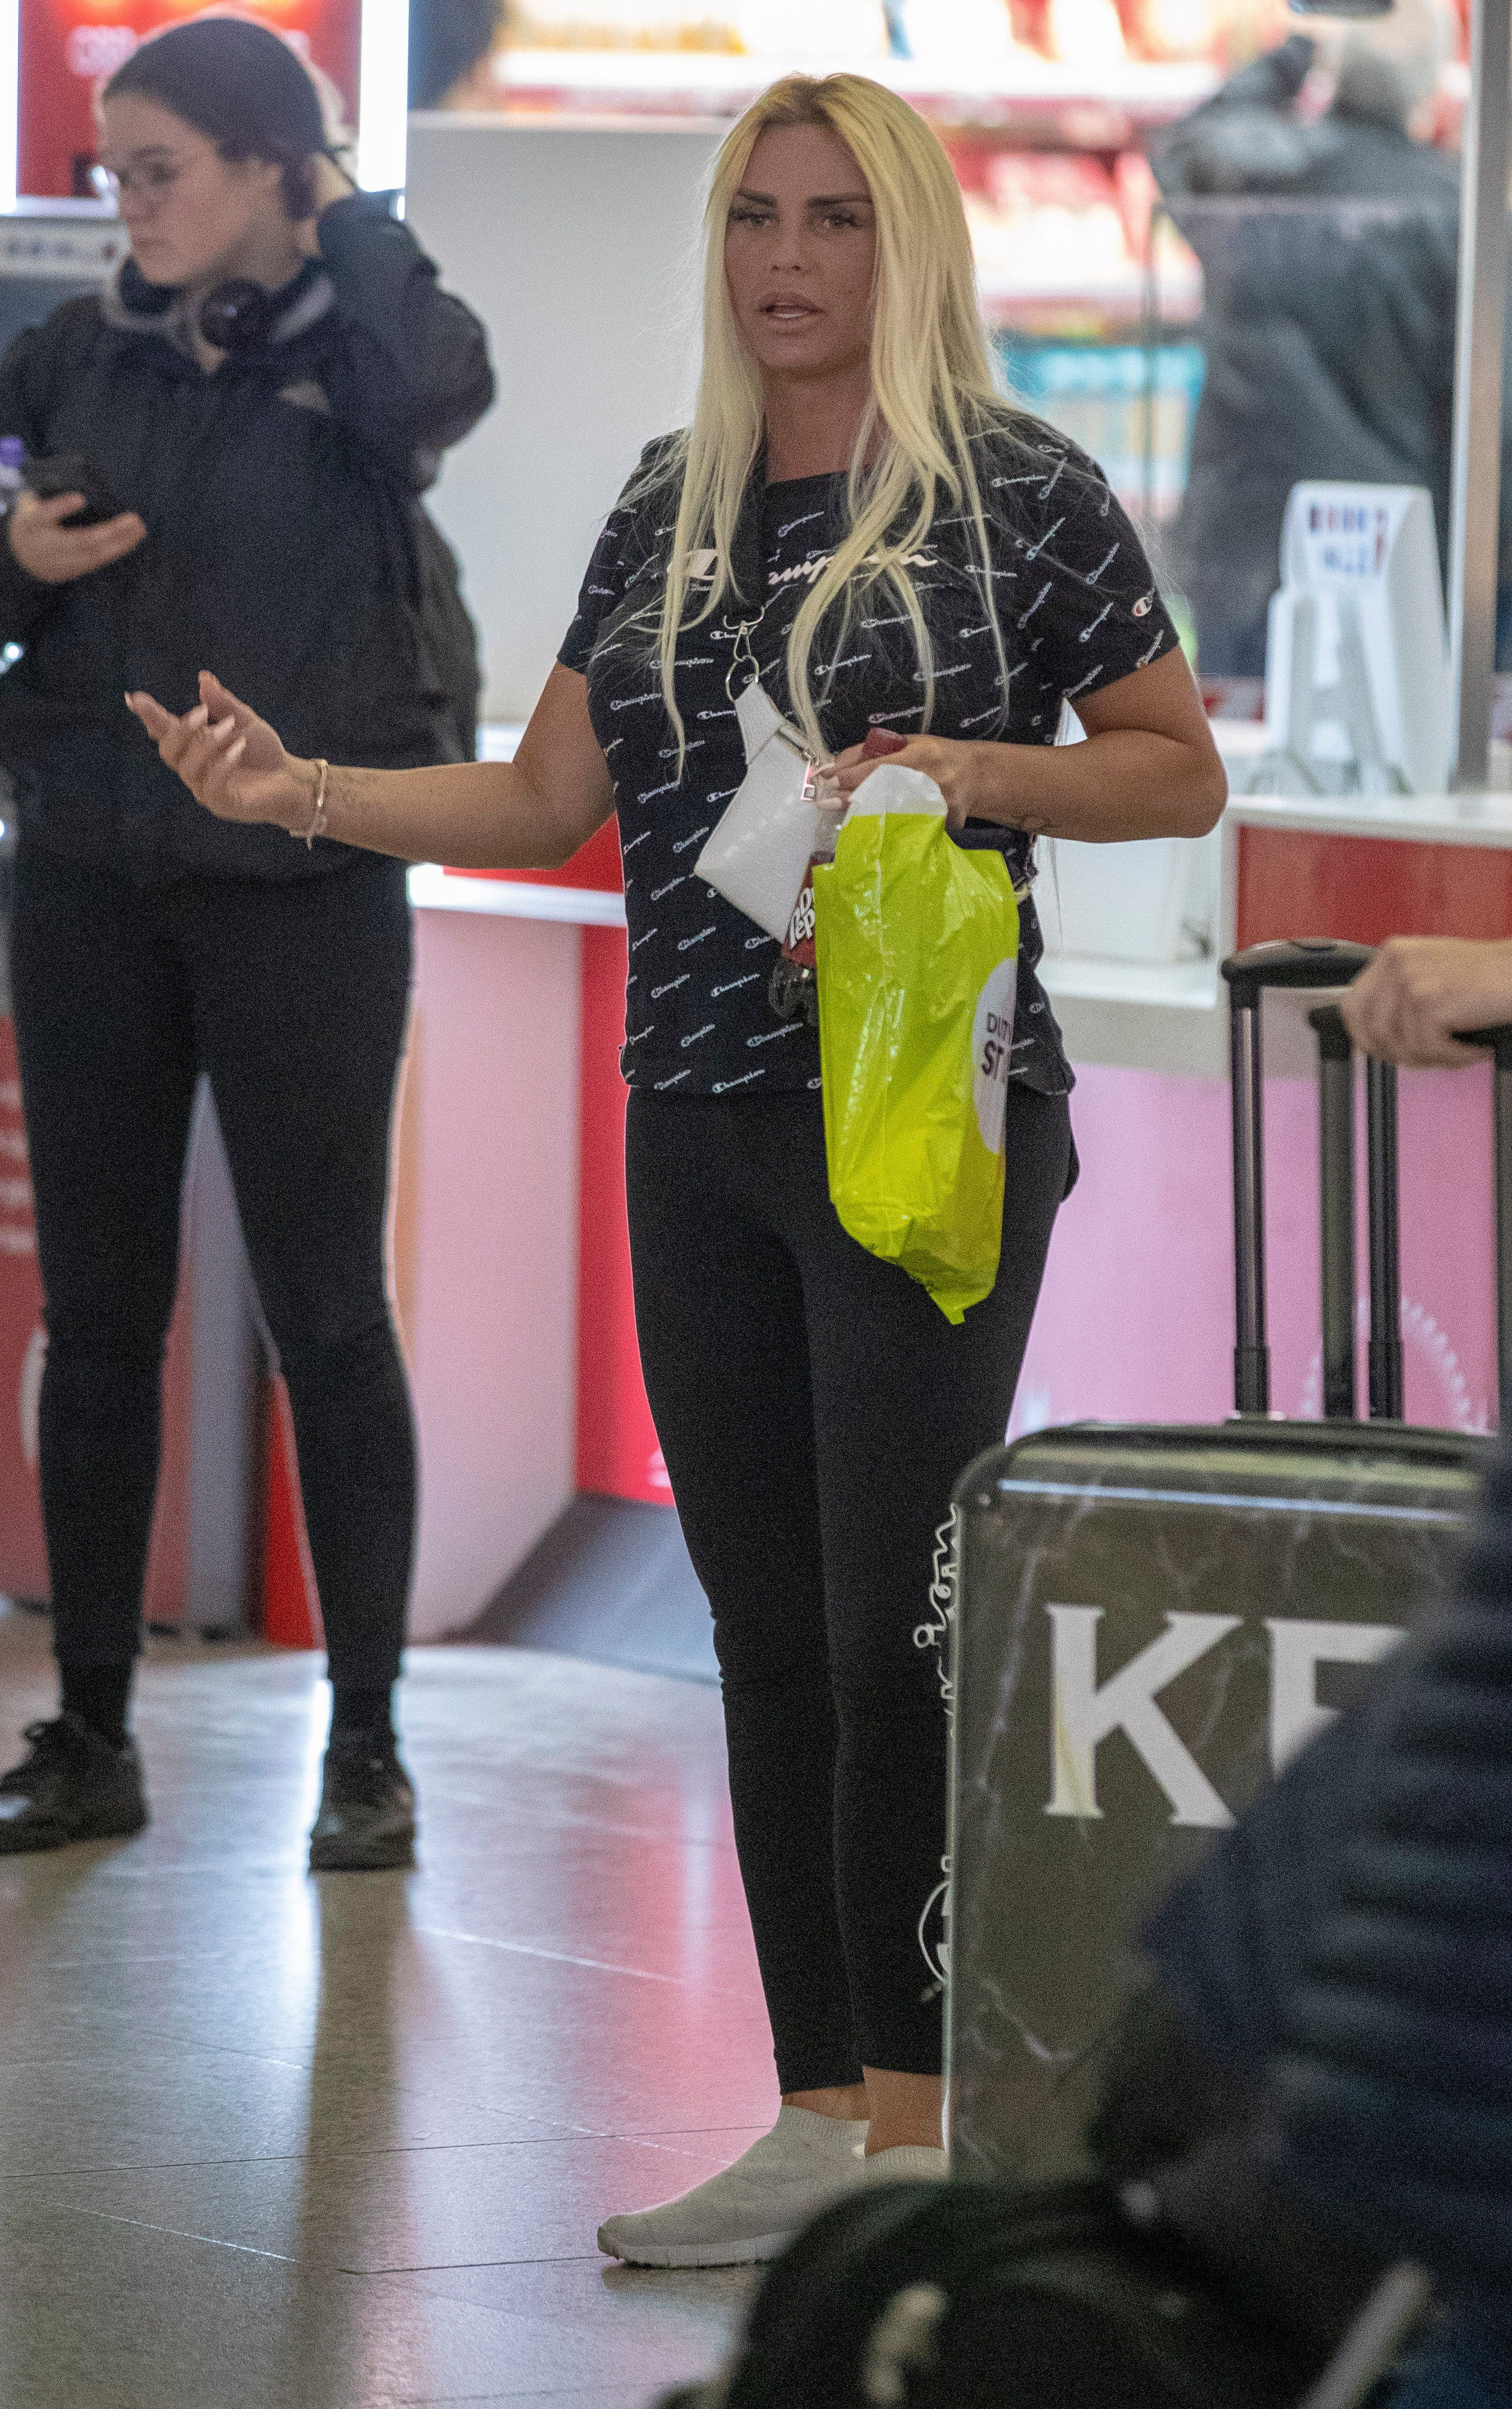 Katie Price Reveals New Tribal Heart Tattoo As She Returns From Turkey With Kris Boyson Check Tribal Heart Tattoos Tribal Heart Heart Tattoo